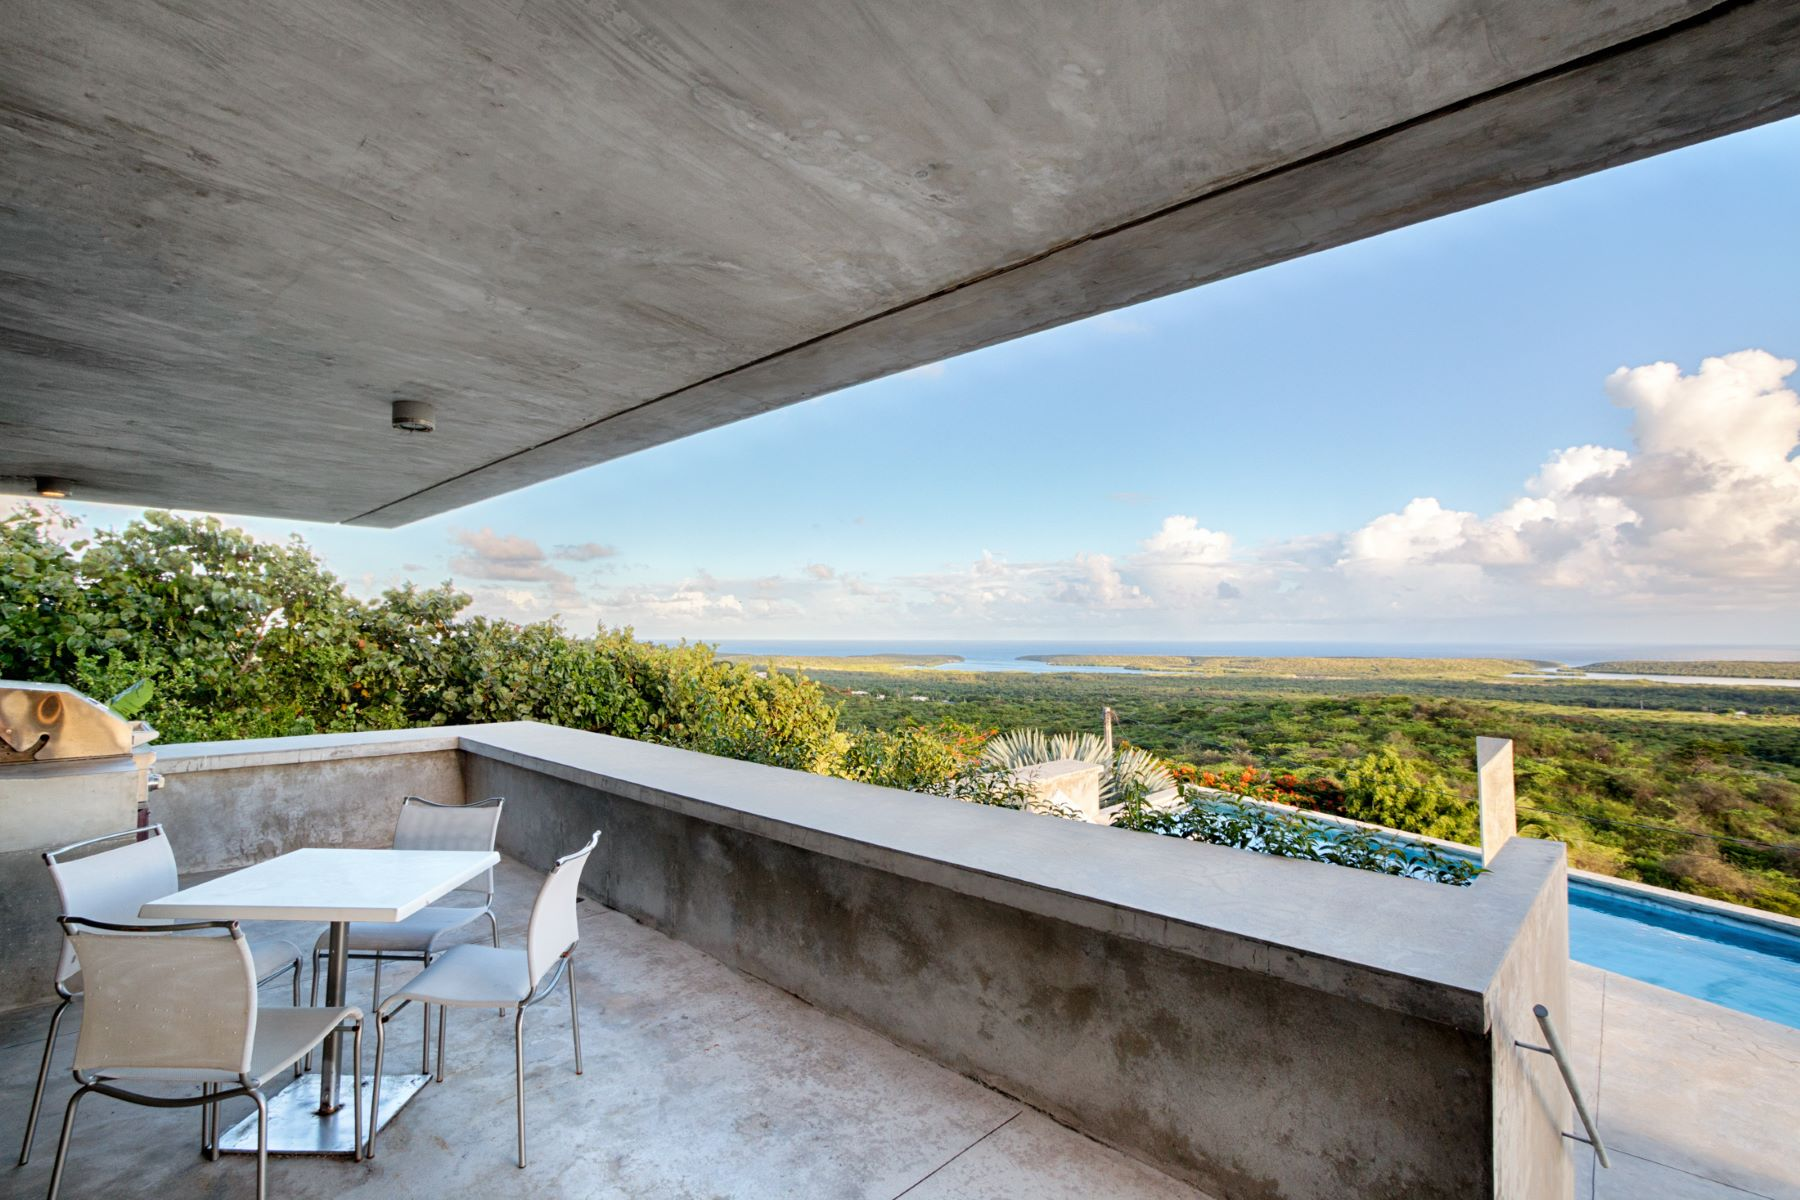 Additional photo for property listing at Bluffside Vieques Island Marvel KM 1.8, Carr 997 Puerto Real Vieques, Puerto Rico 00765 Puerto Rico